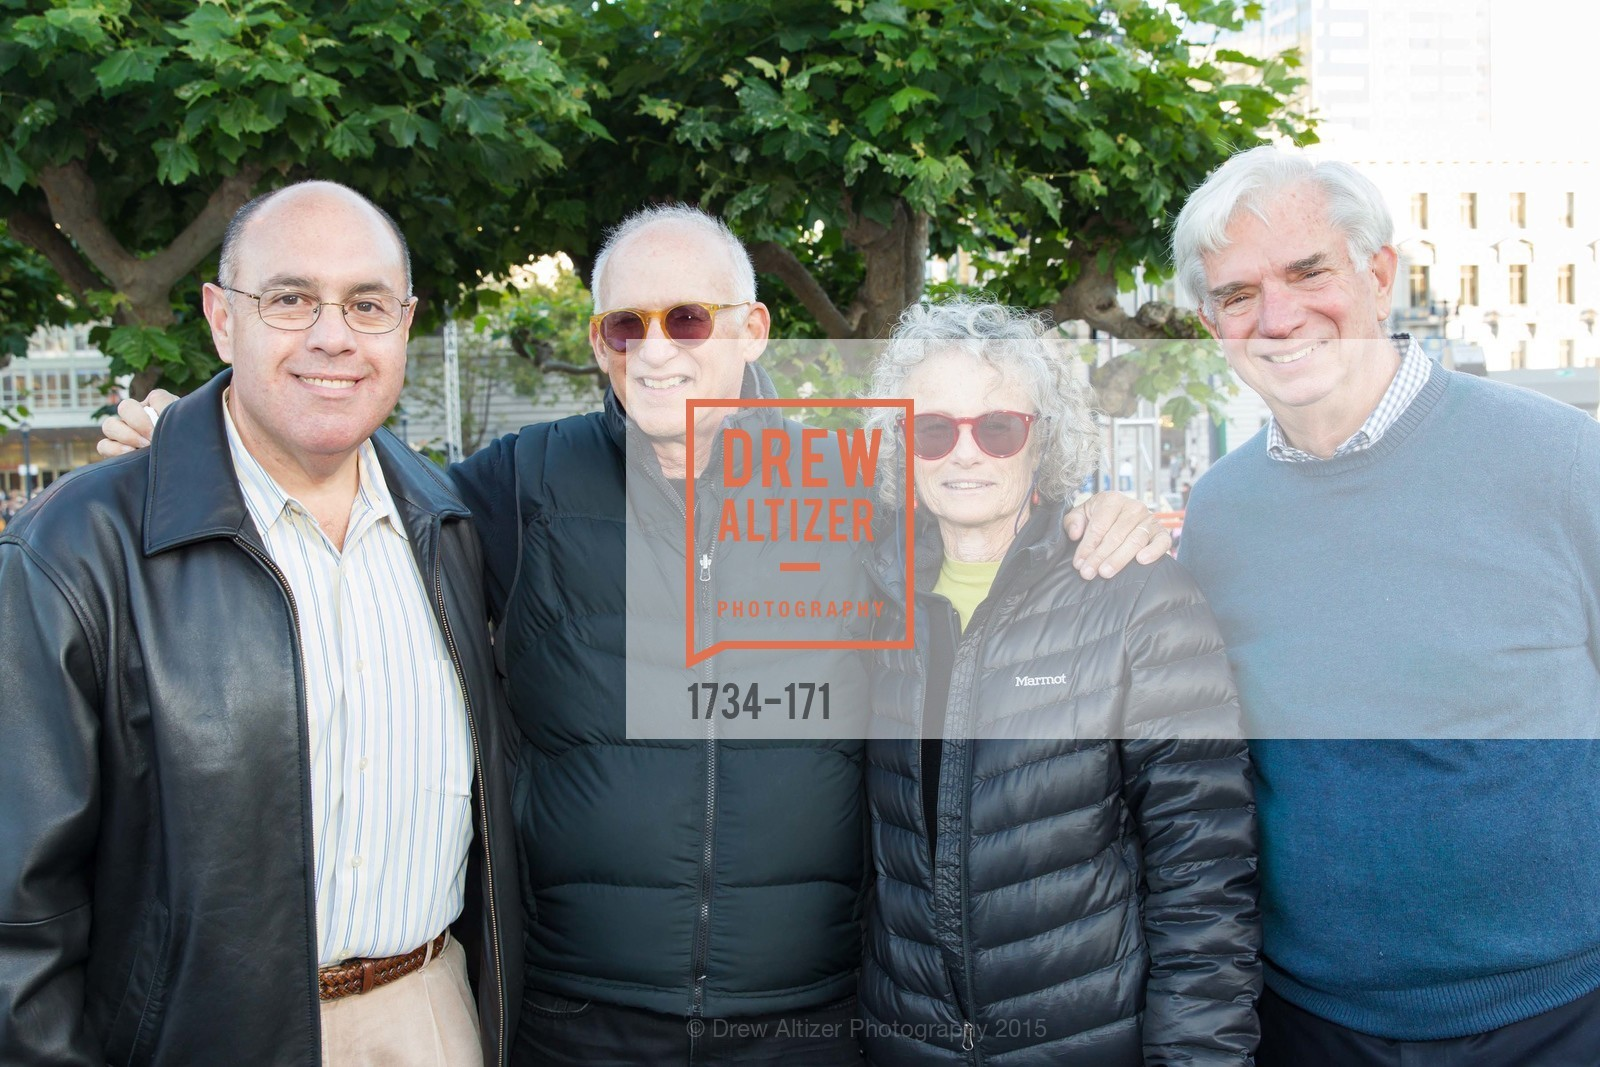 Robert Vergara, Richard Bordow, Liz Bordow, Jim Briggs, San Francisco City Hall Centennial Celebration, Civic Center Plaza, June 18th, 2015,Drew Altizer, Drew Altizer Photography, full-service agency, private events, San Francisco photographer, photographer california